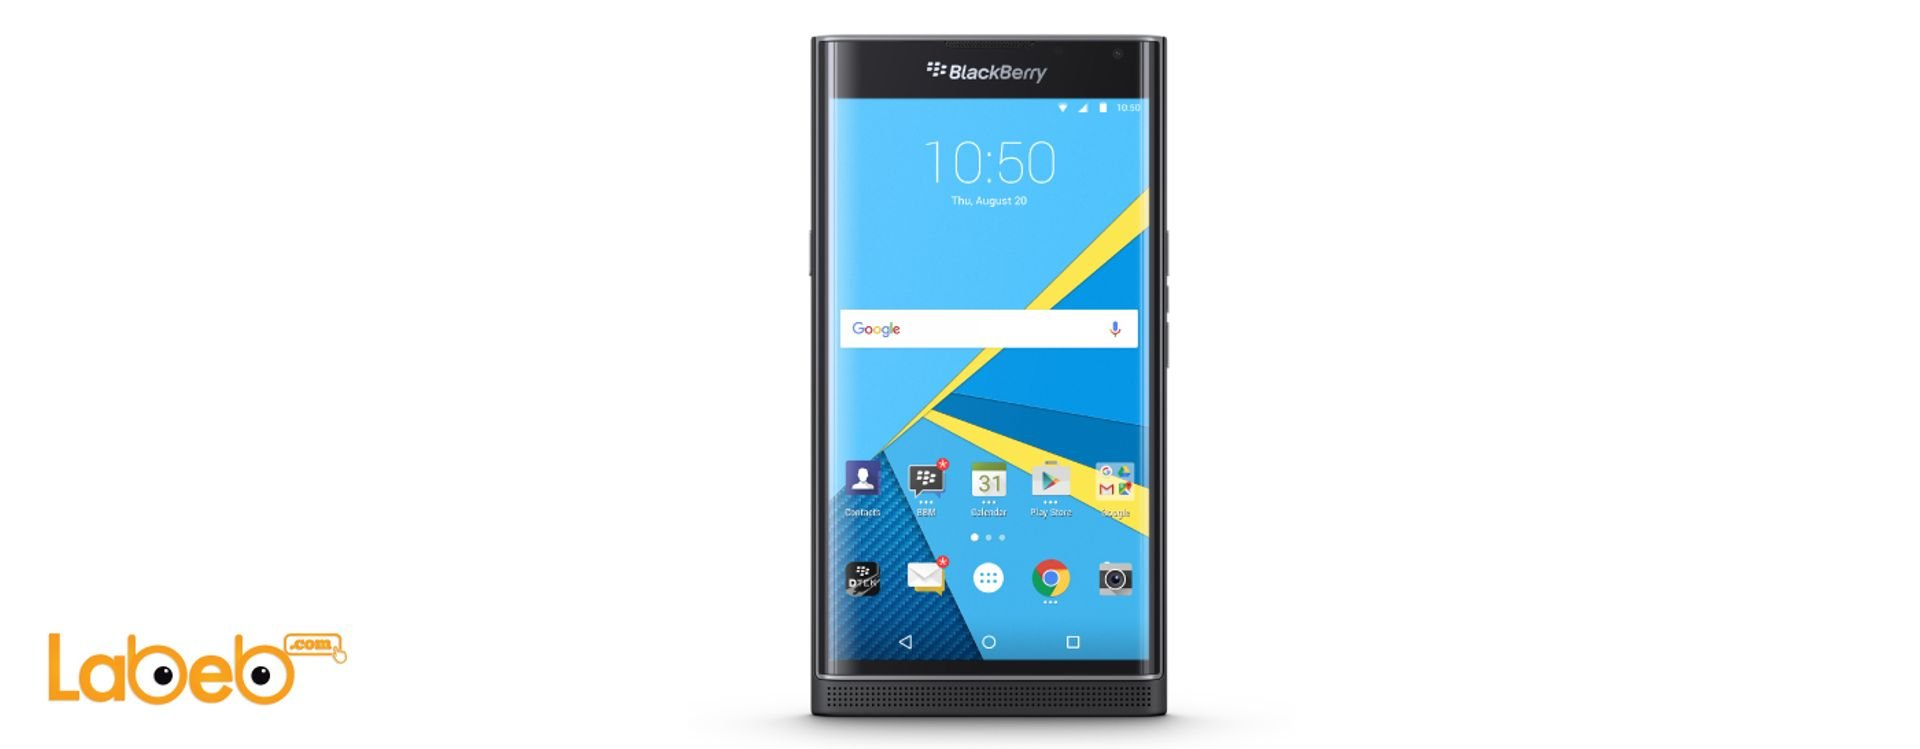 New BlackBerry Priv Specifications. Powered by Android for the first time.